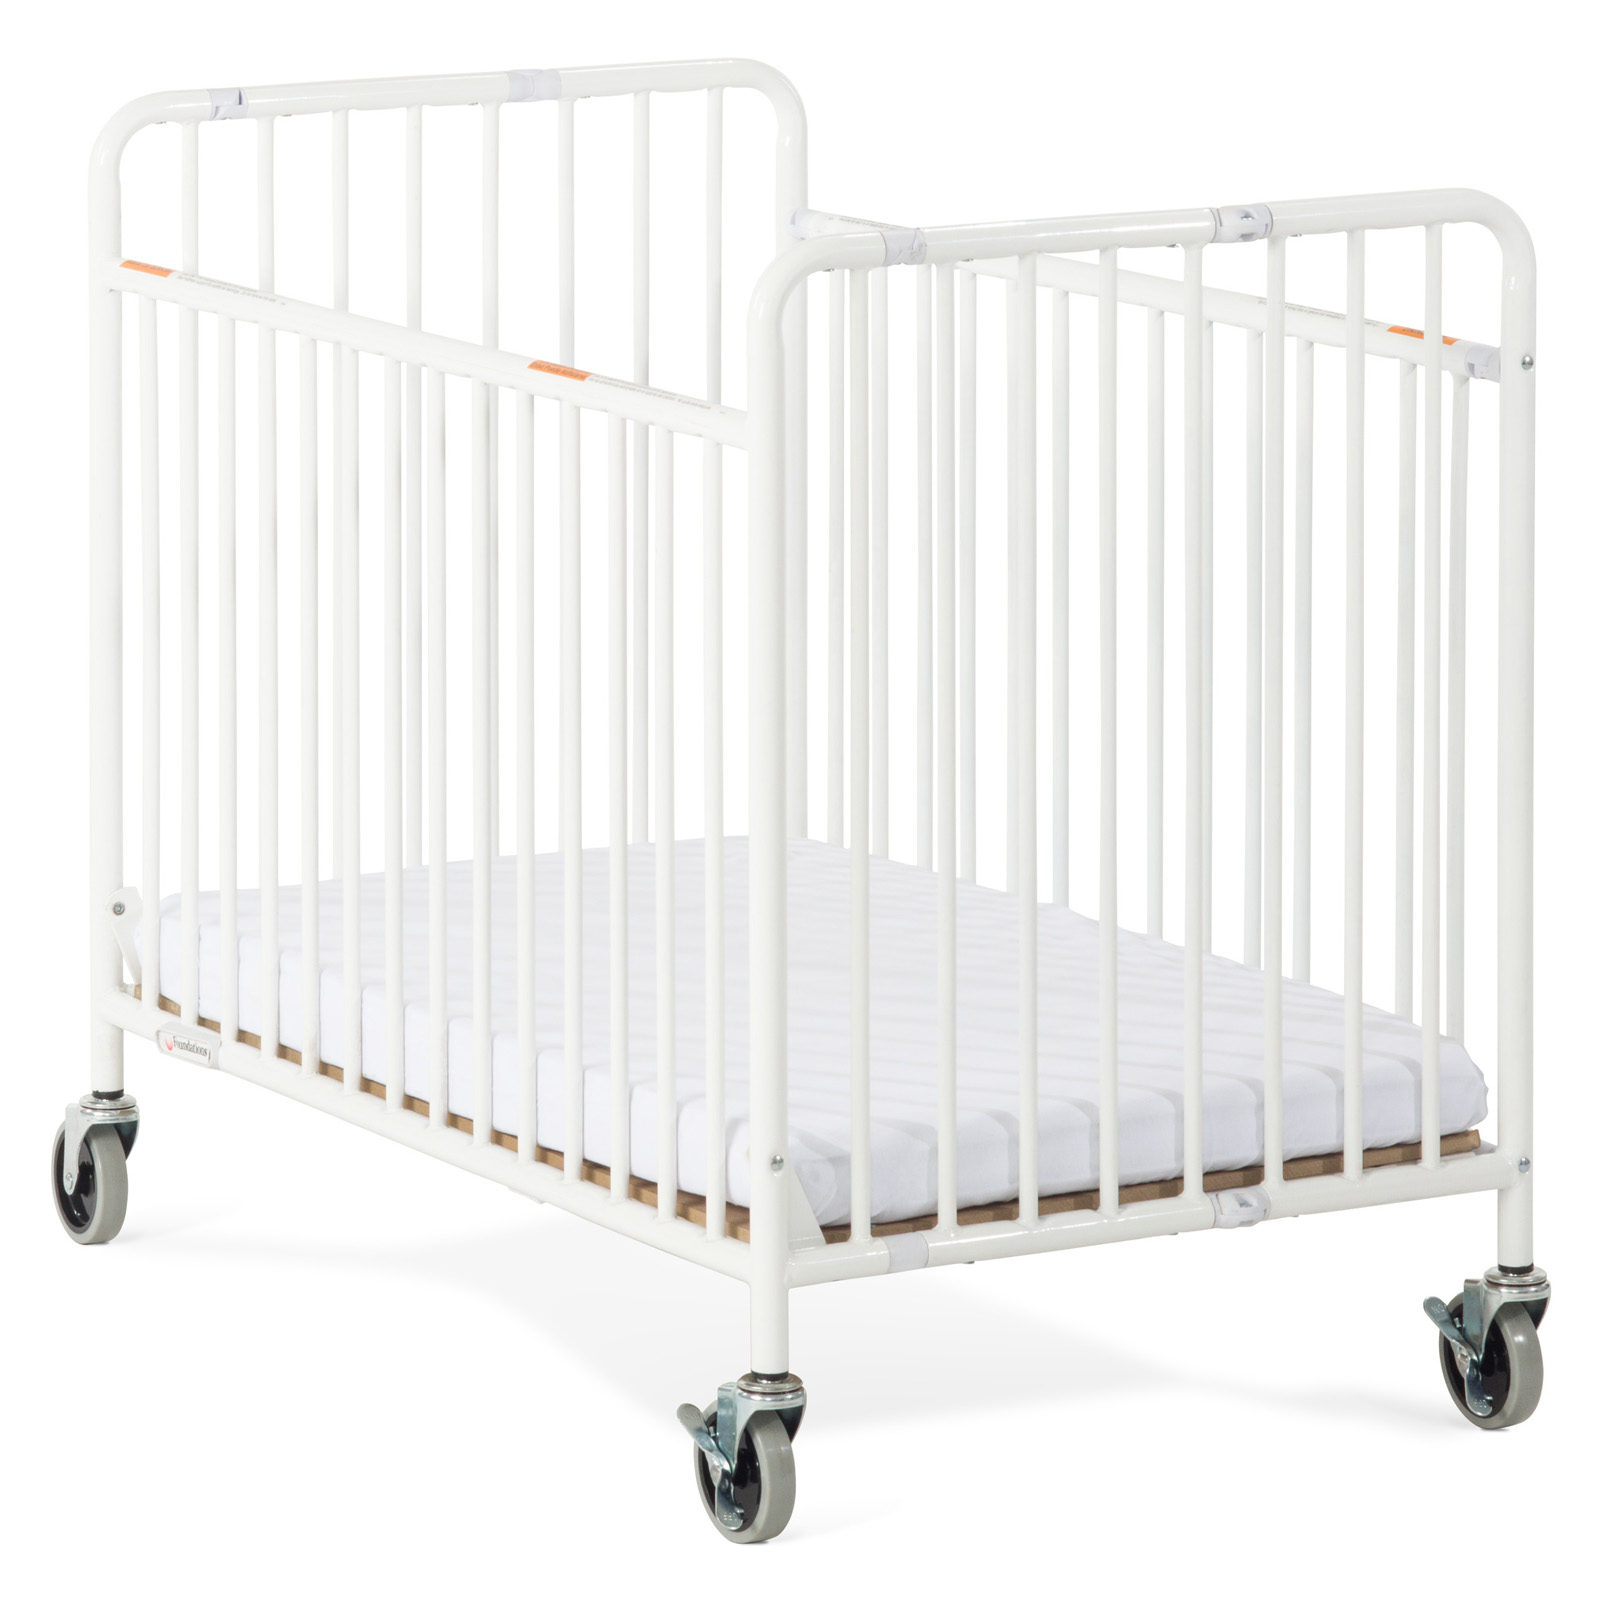 Foundations StowAway Folding pact Size Crib with